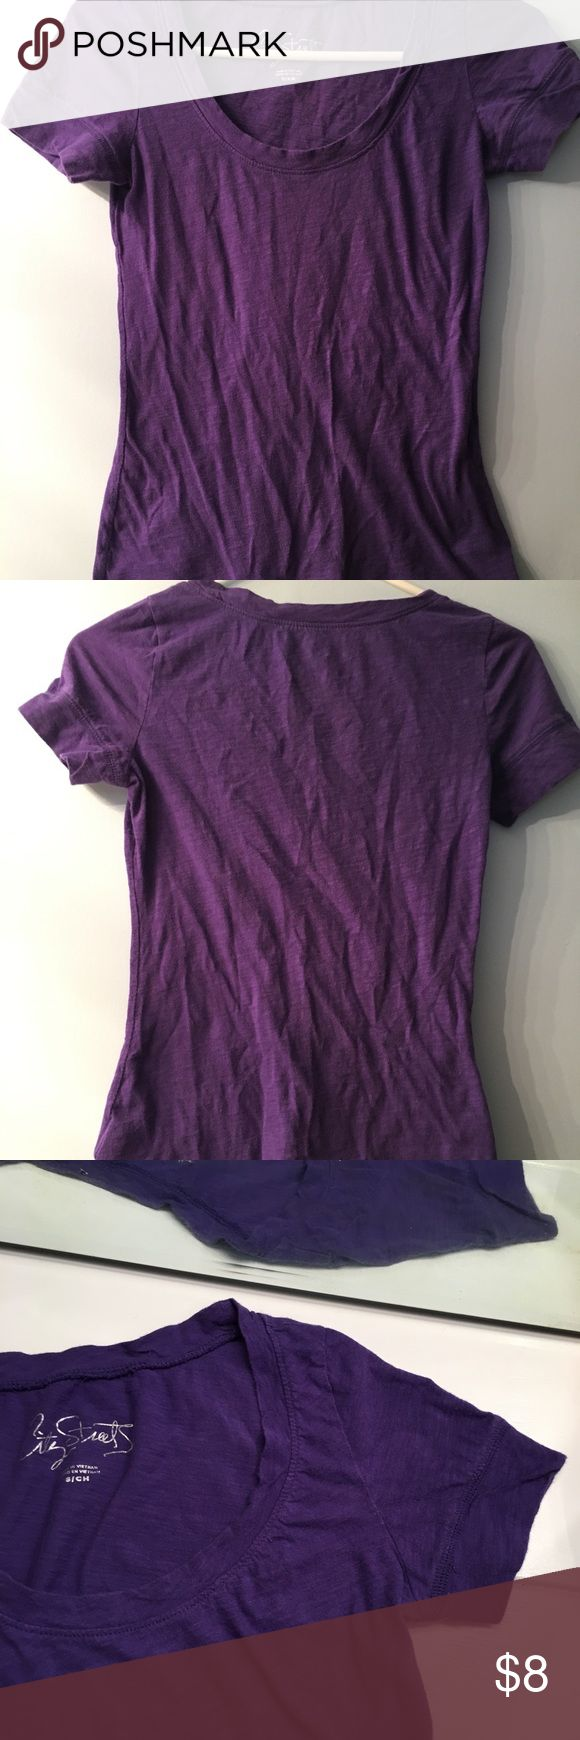 City Streets tee Small, scoop neck, thin material, deep purple color. City Streets Tops Tees - Short Sleeve